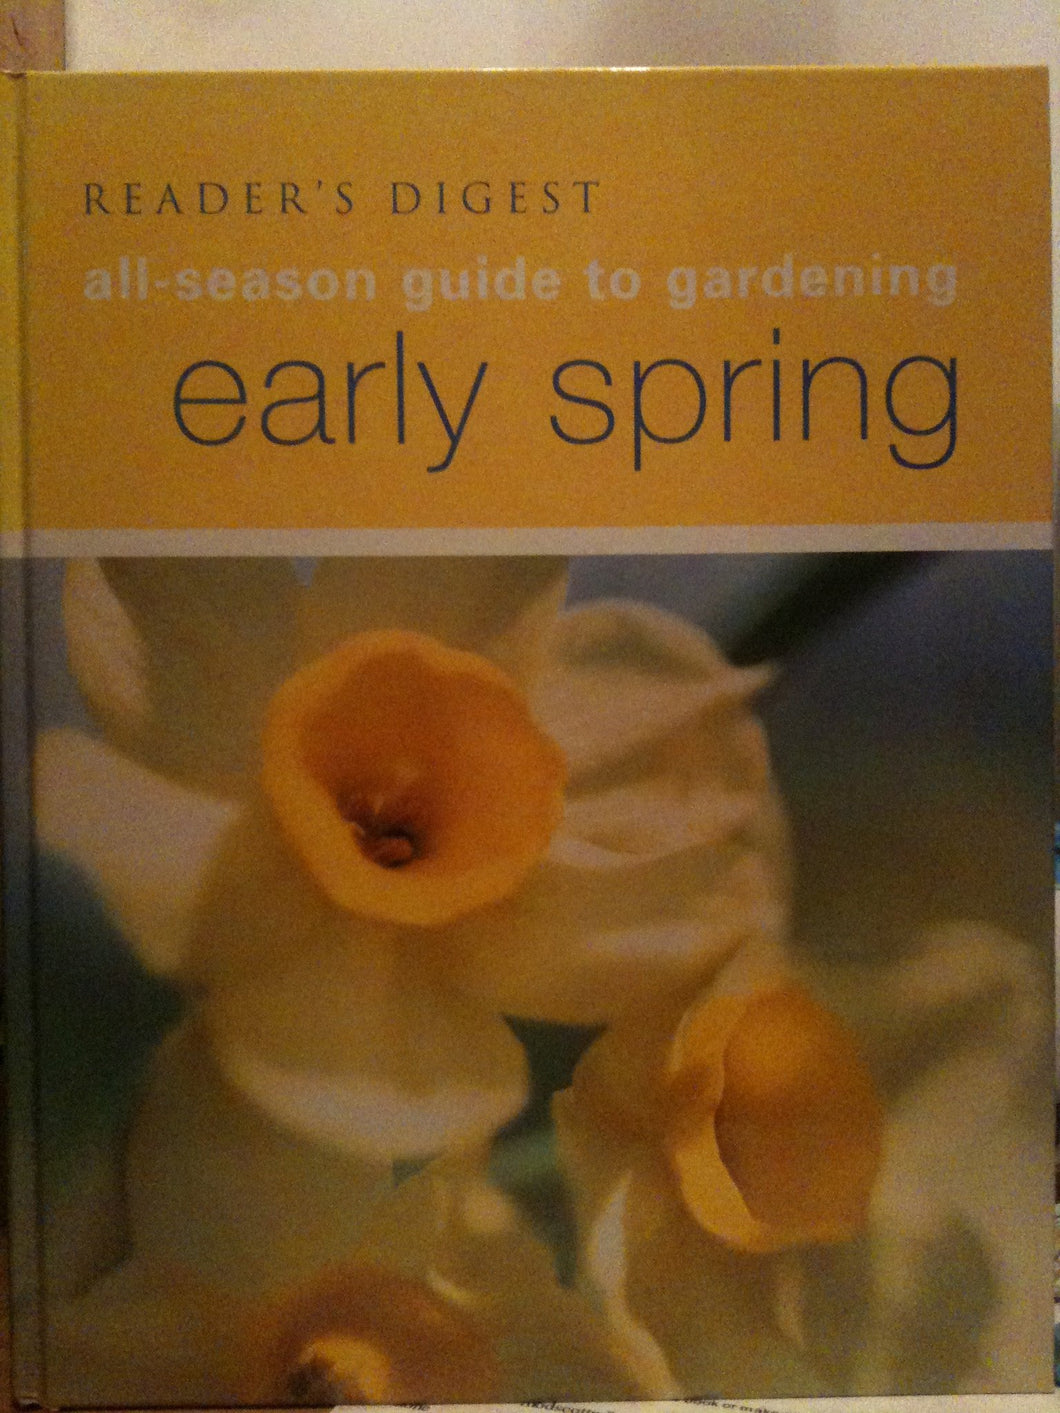 Early Spring (All Season Guide to Gardening) [Hardcover]